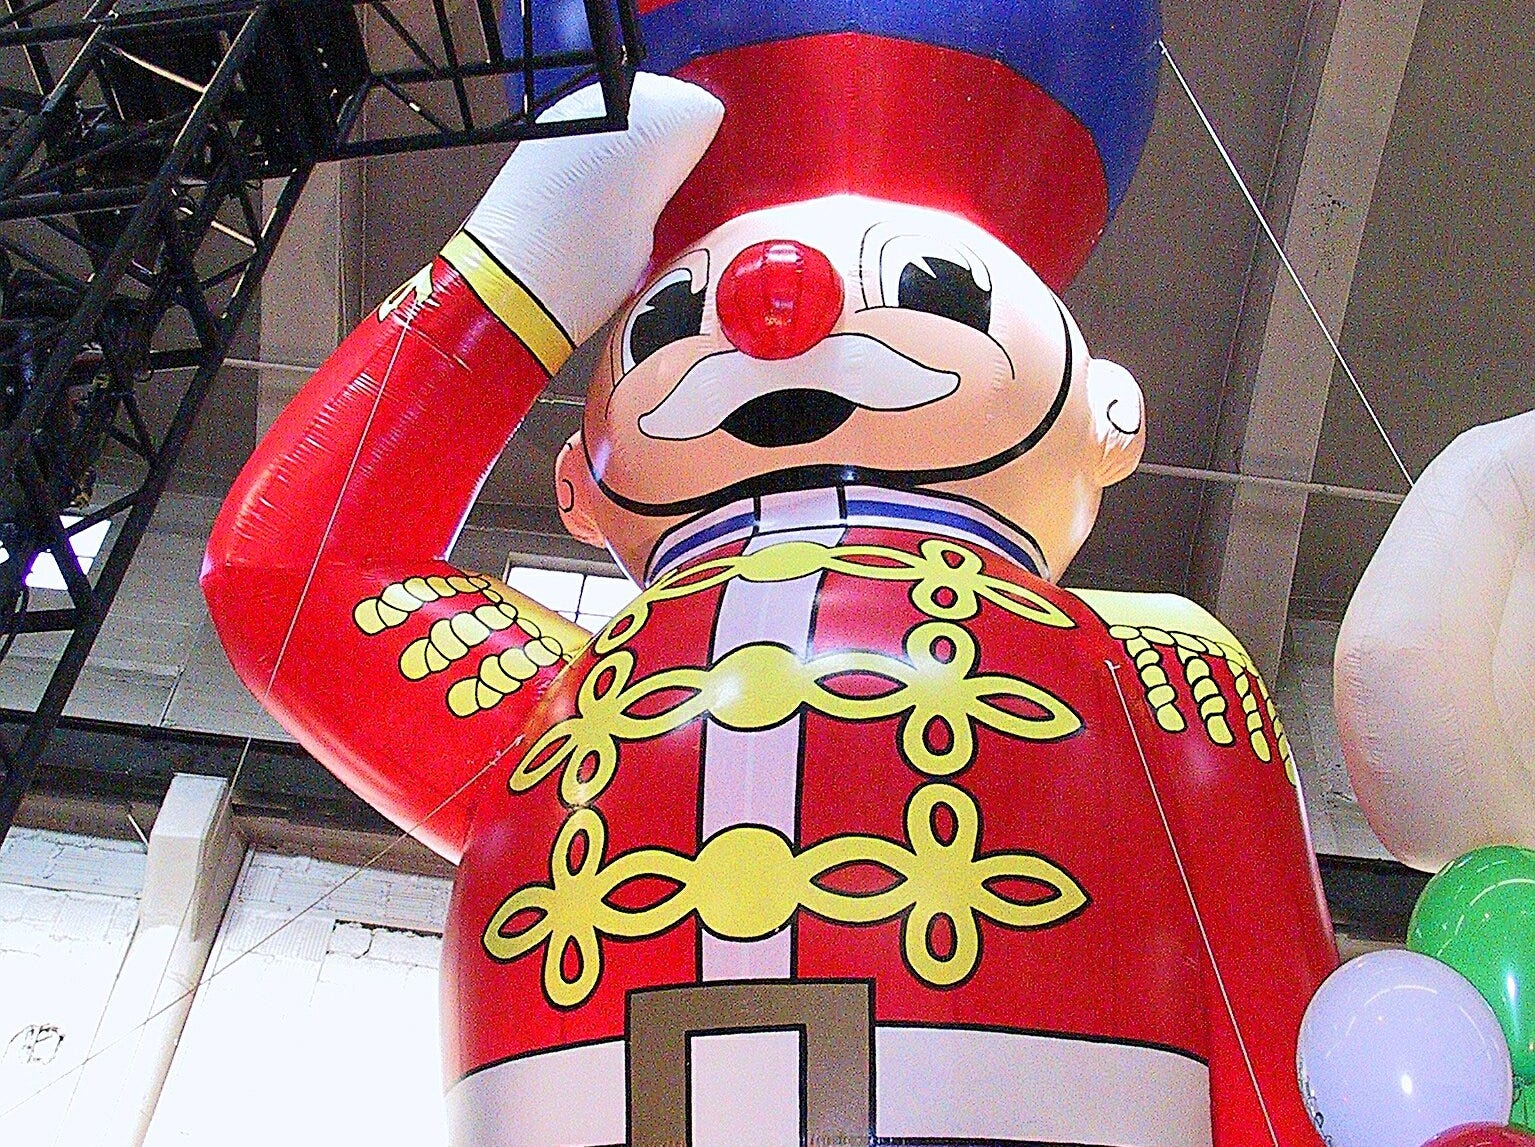 -  -The Toy Soldier balloon is ready to go at the Macy's Parade Studio in Hoboken, N.J. It is one of 15 giant character balloons that will be featured in this year's Macy's Thanksgiving Day Parade.